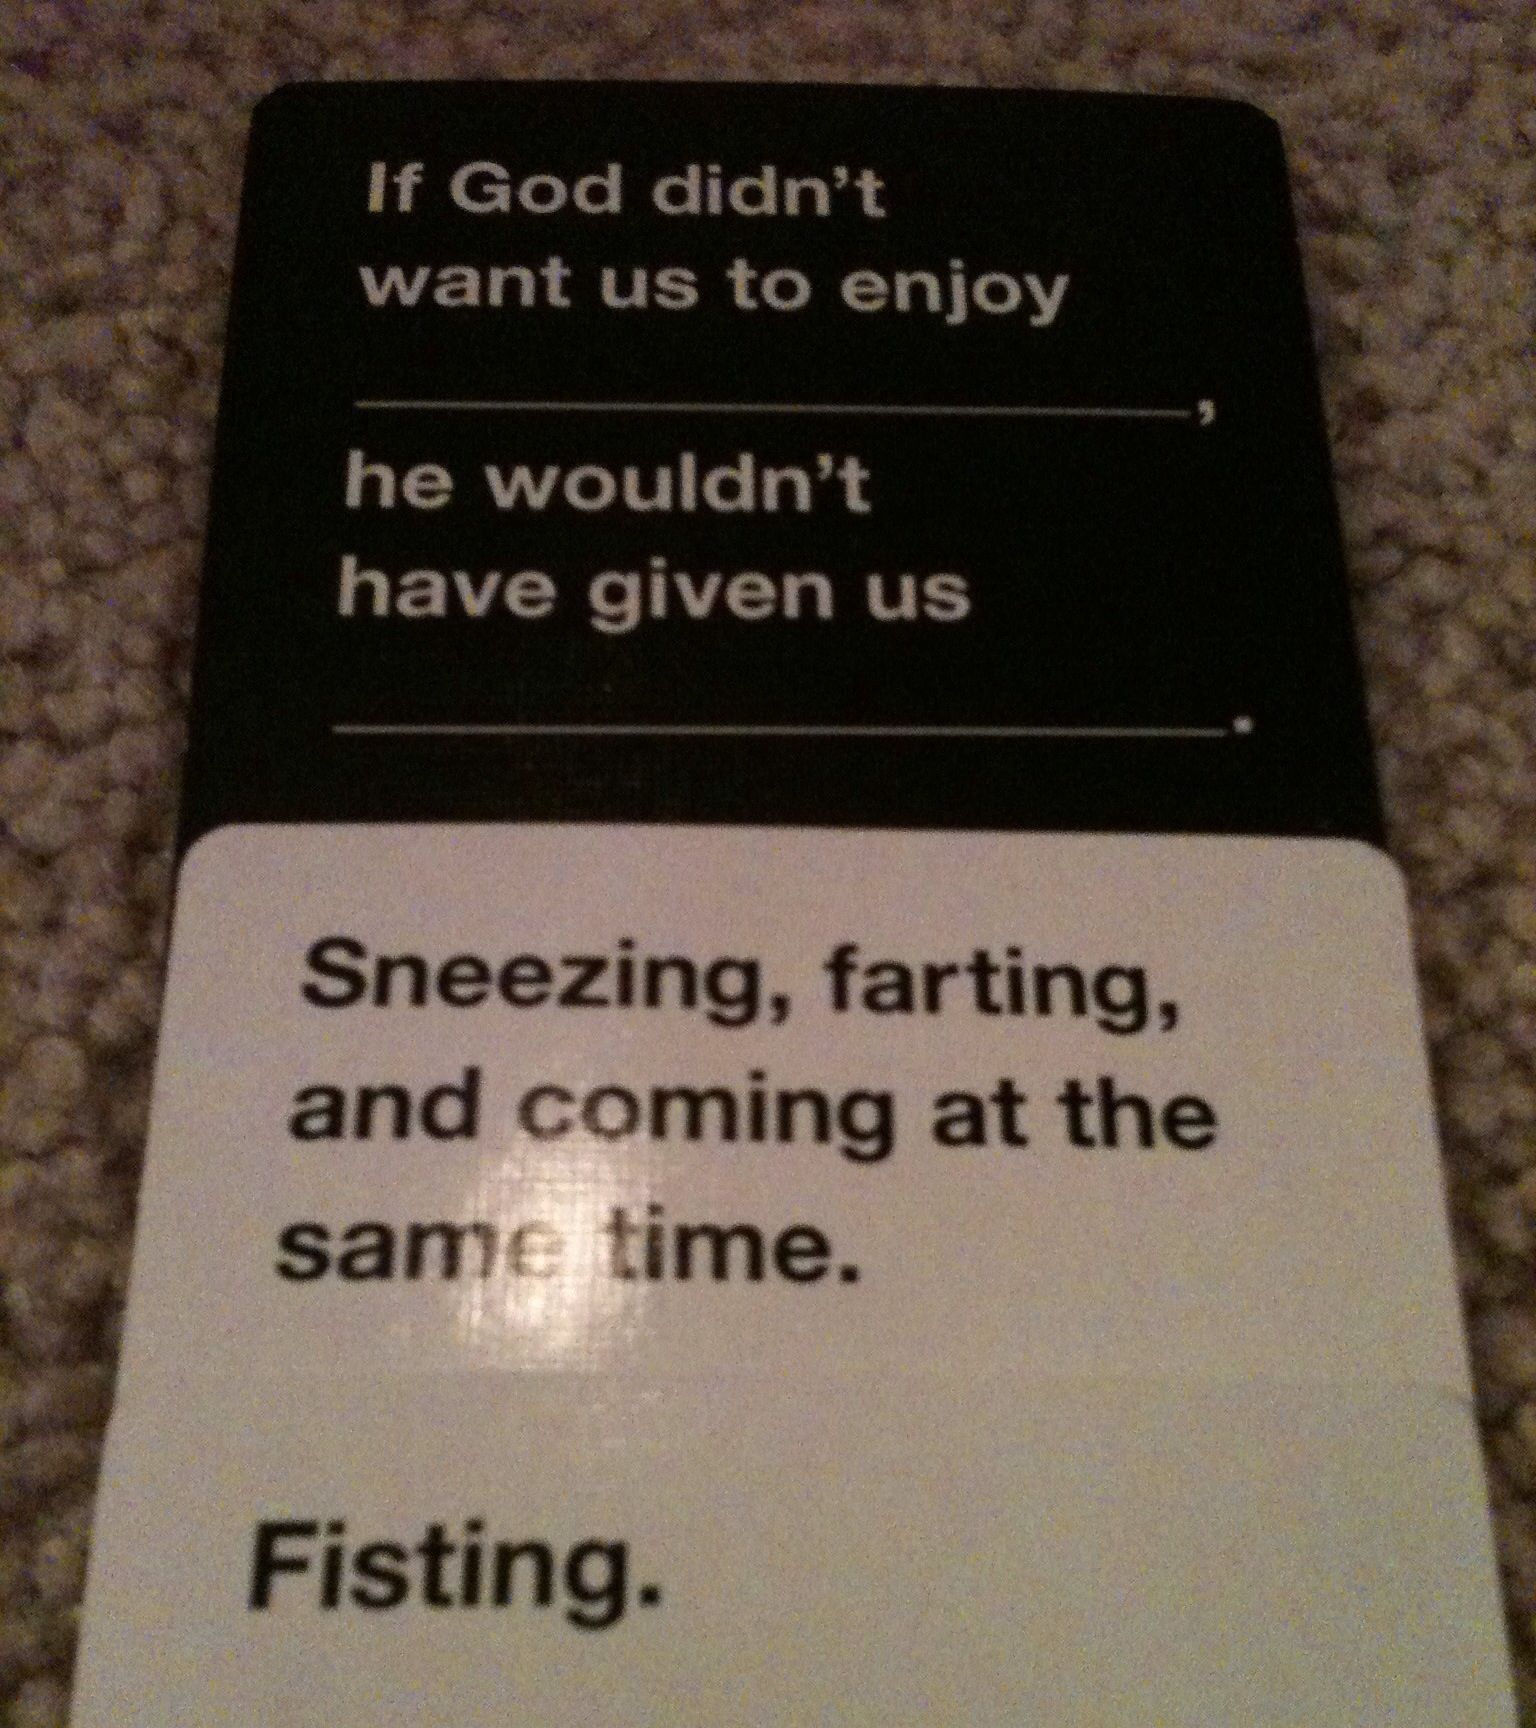 97f0dabe4a5e265d71393525b4f1afa6 cards against humanity funniest card combo i've ever seen